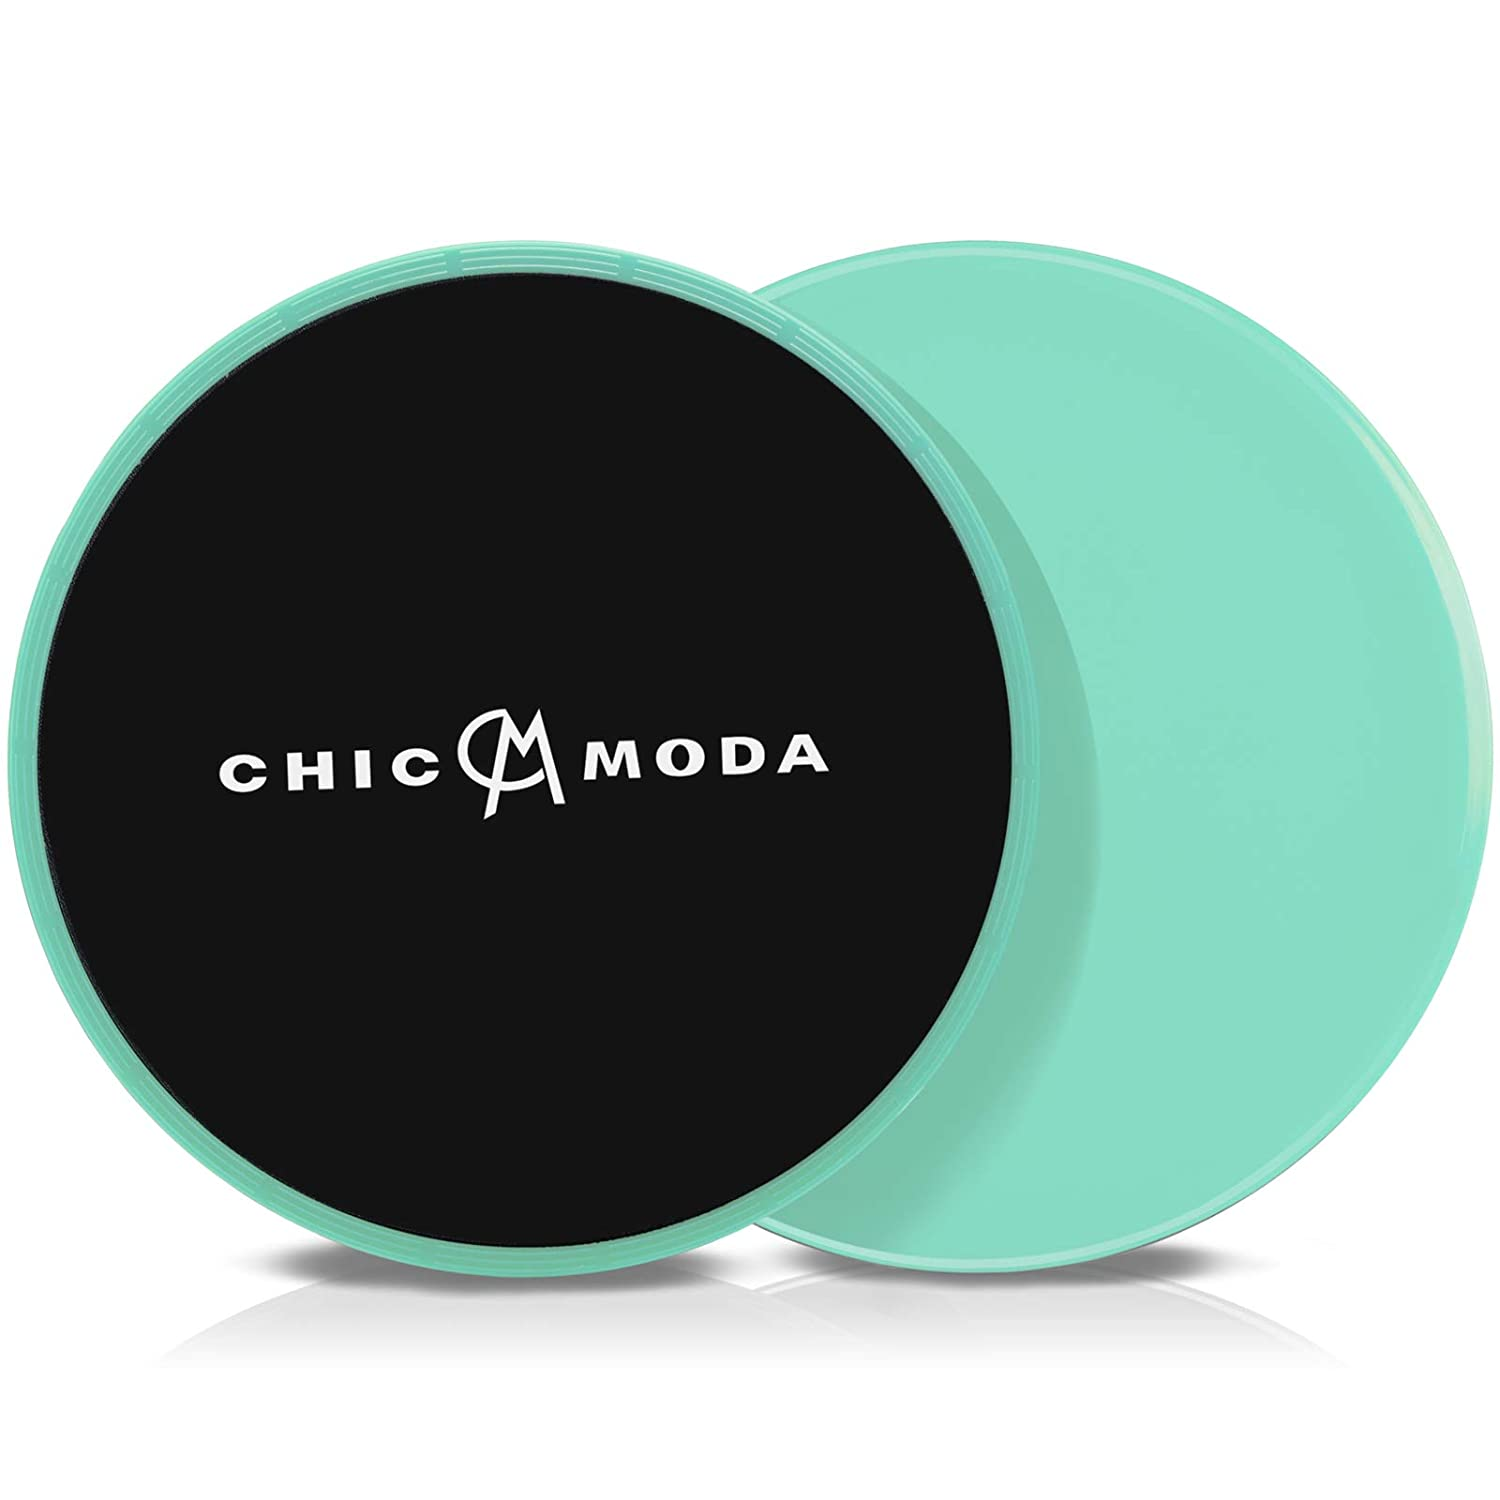 CHICMODA Gliding Discs Core Sliders, Dual Sided Disks Fitness Equipment for Abdominal, Home Exercises to Strengthen Core, Glutes, and Abs, Used on Carpet or Hard Floors with Carry Bag